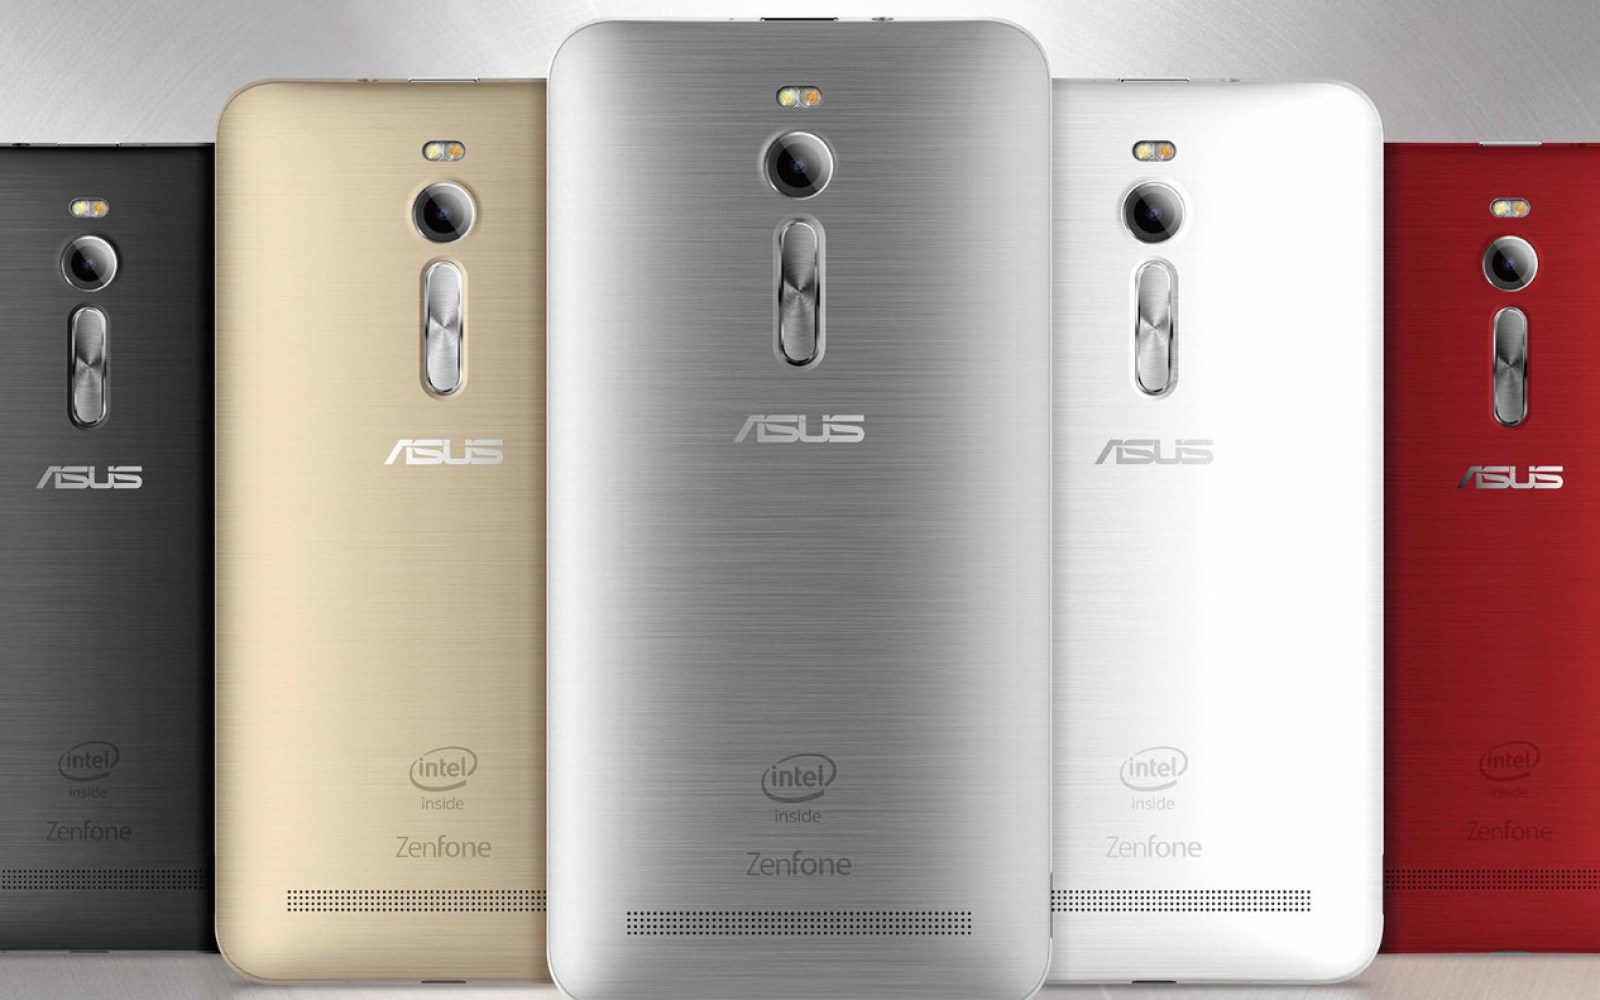 Android 6.0 Marshmallow is making its way to the Asus ZenFone 2